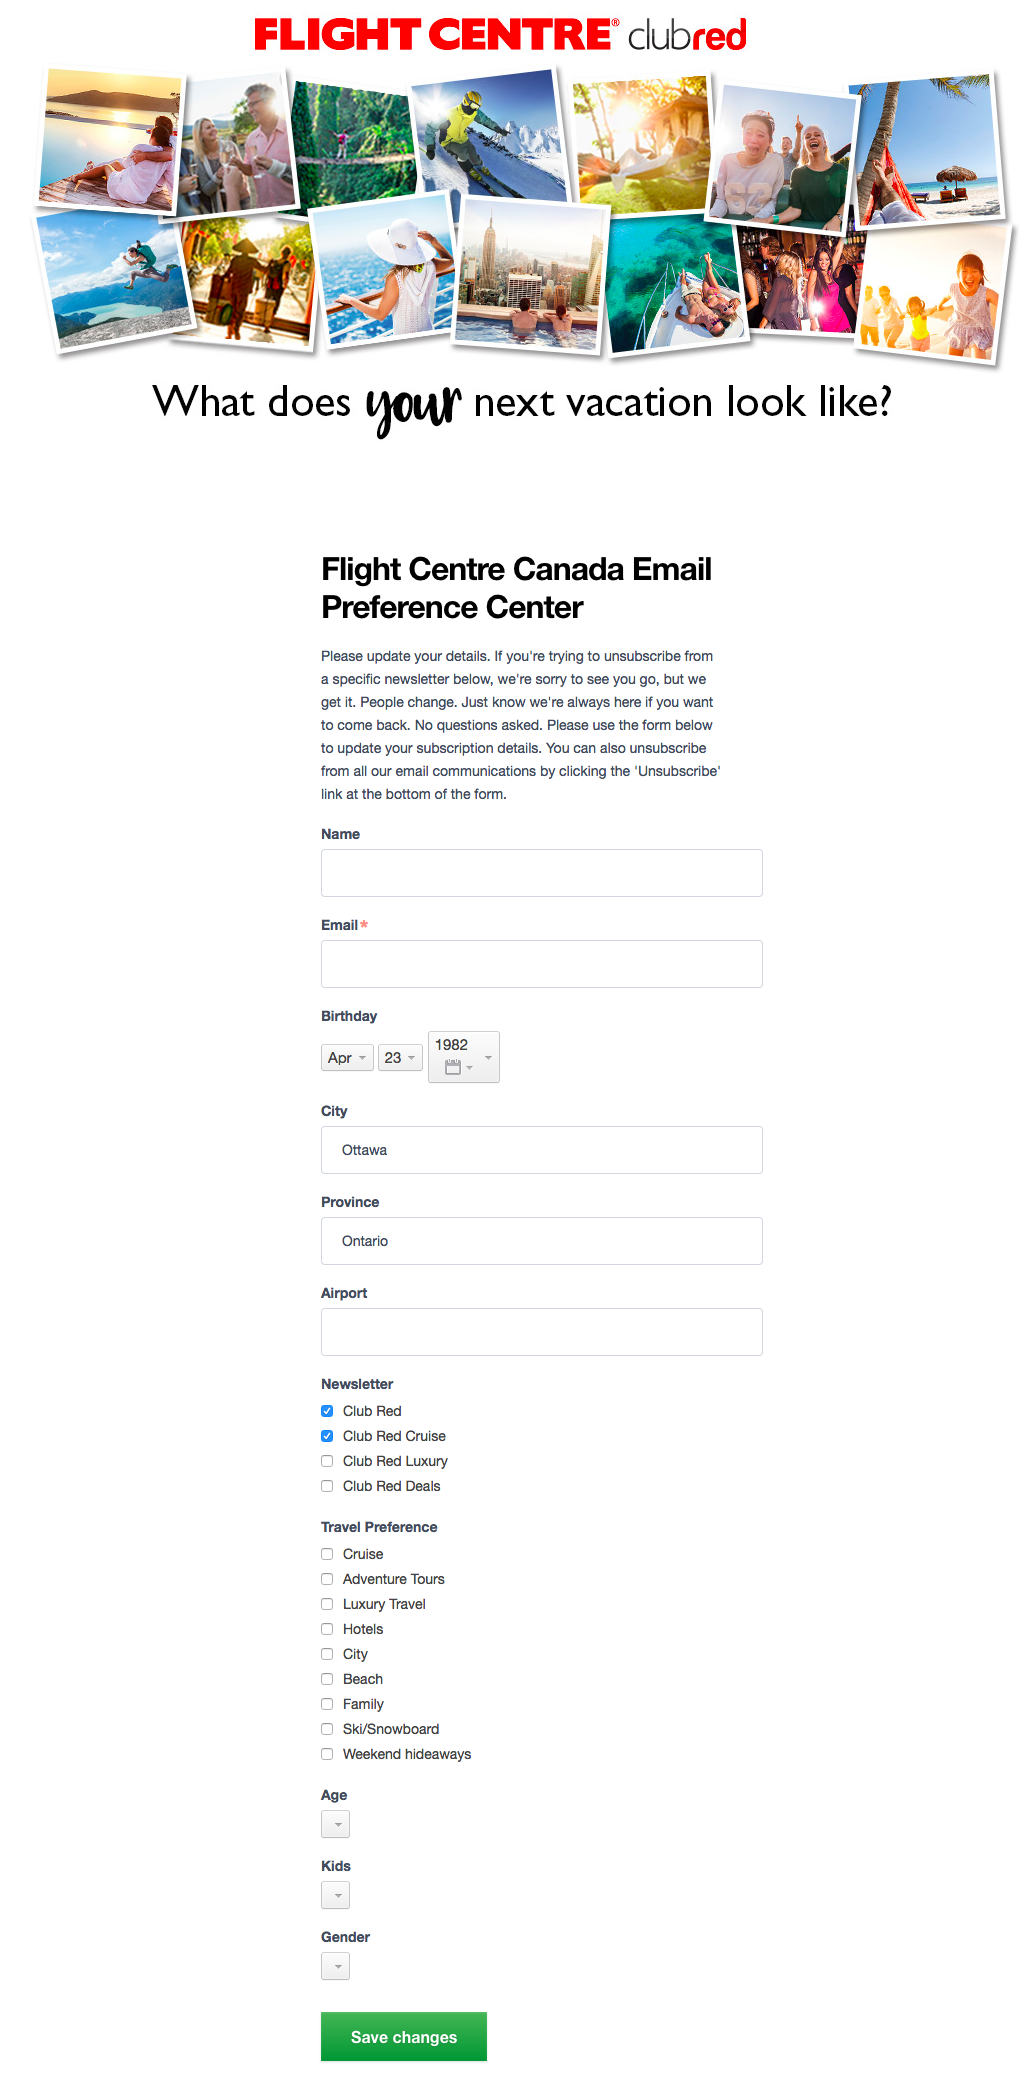 Flight Centre – Email Preference Center